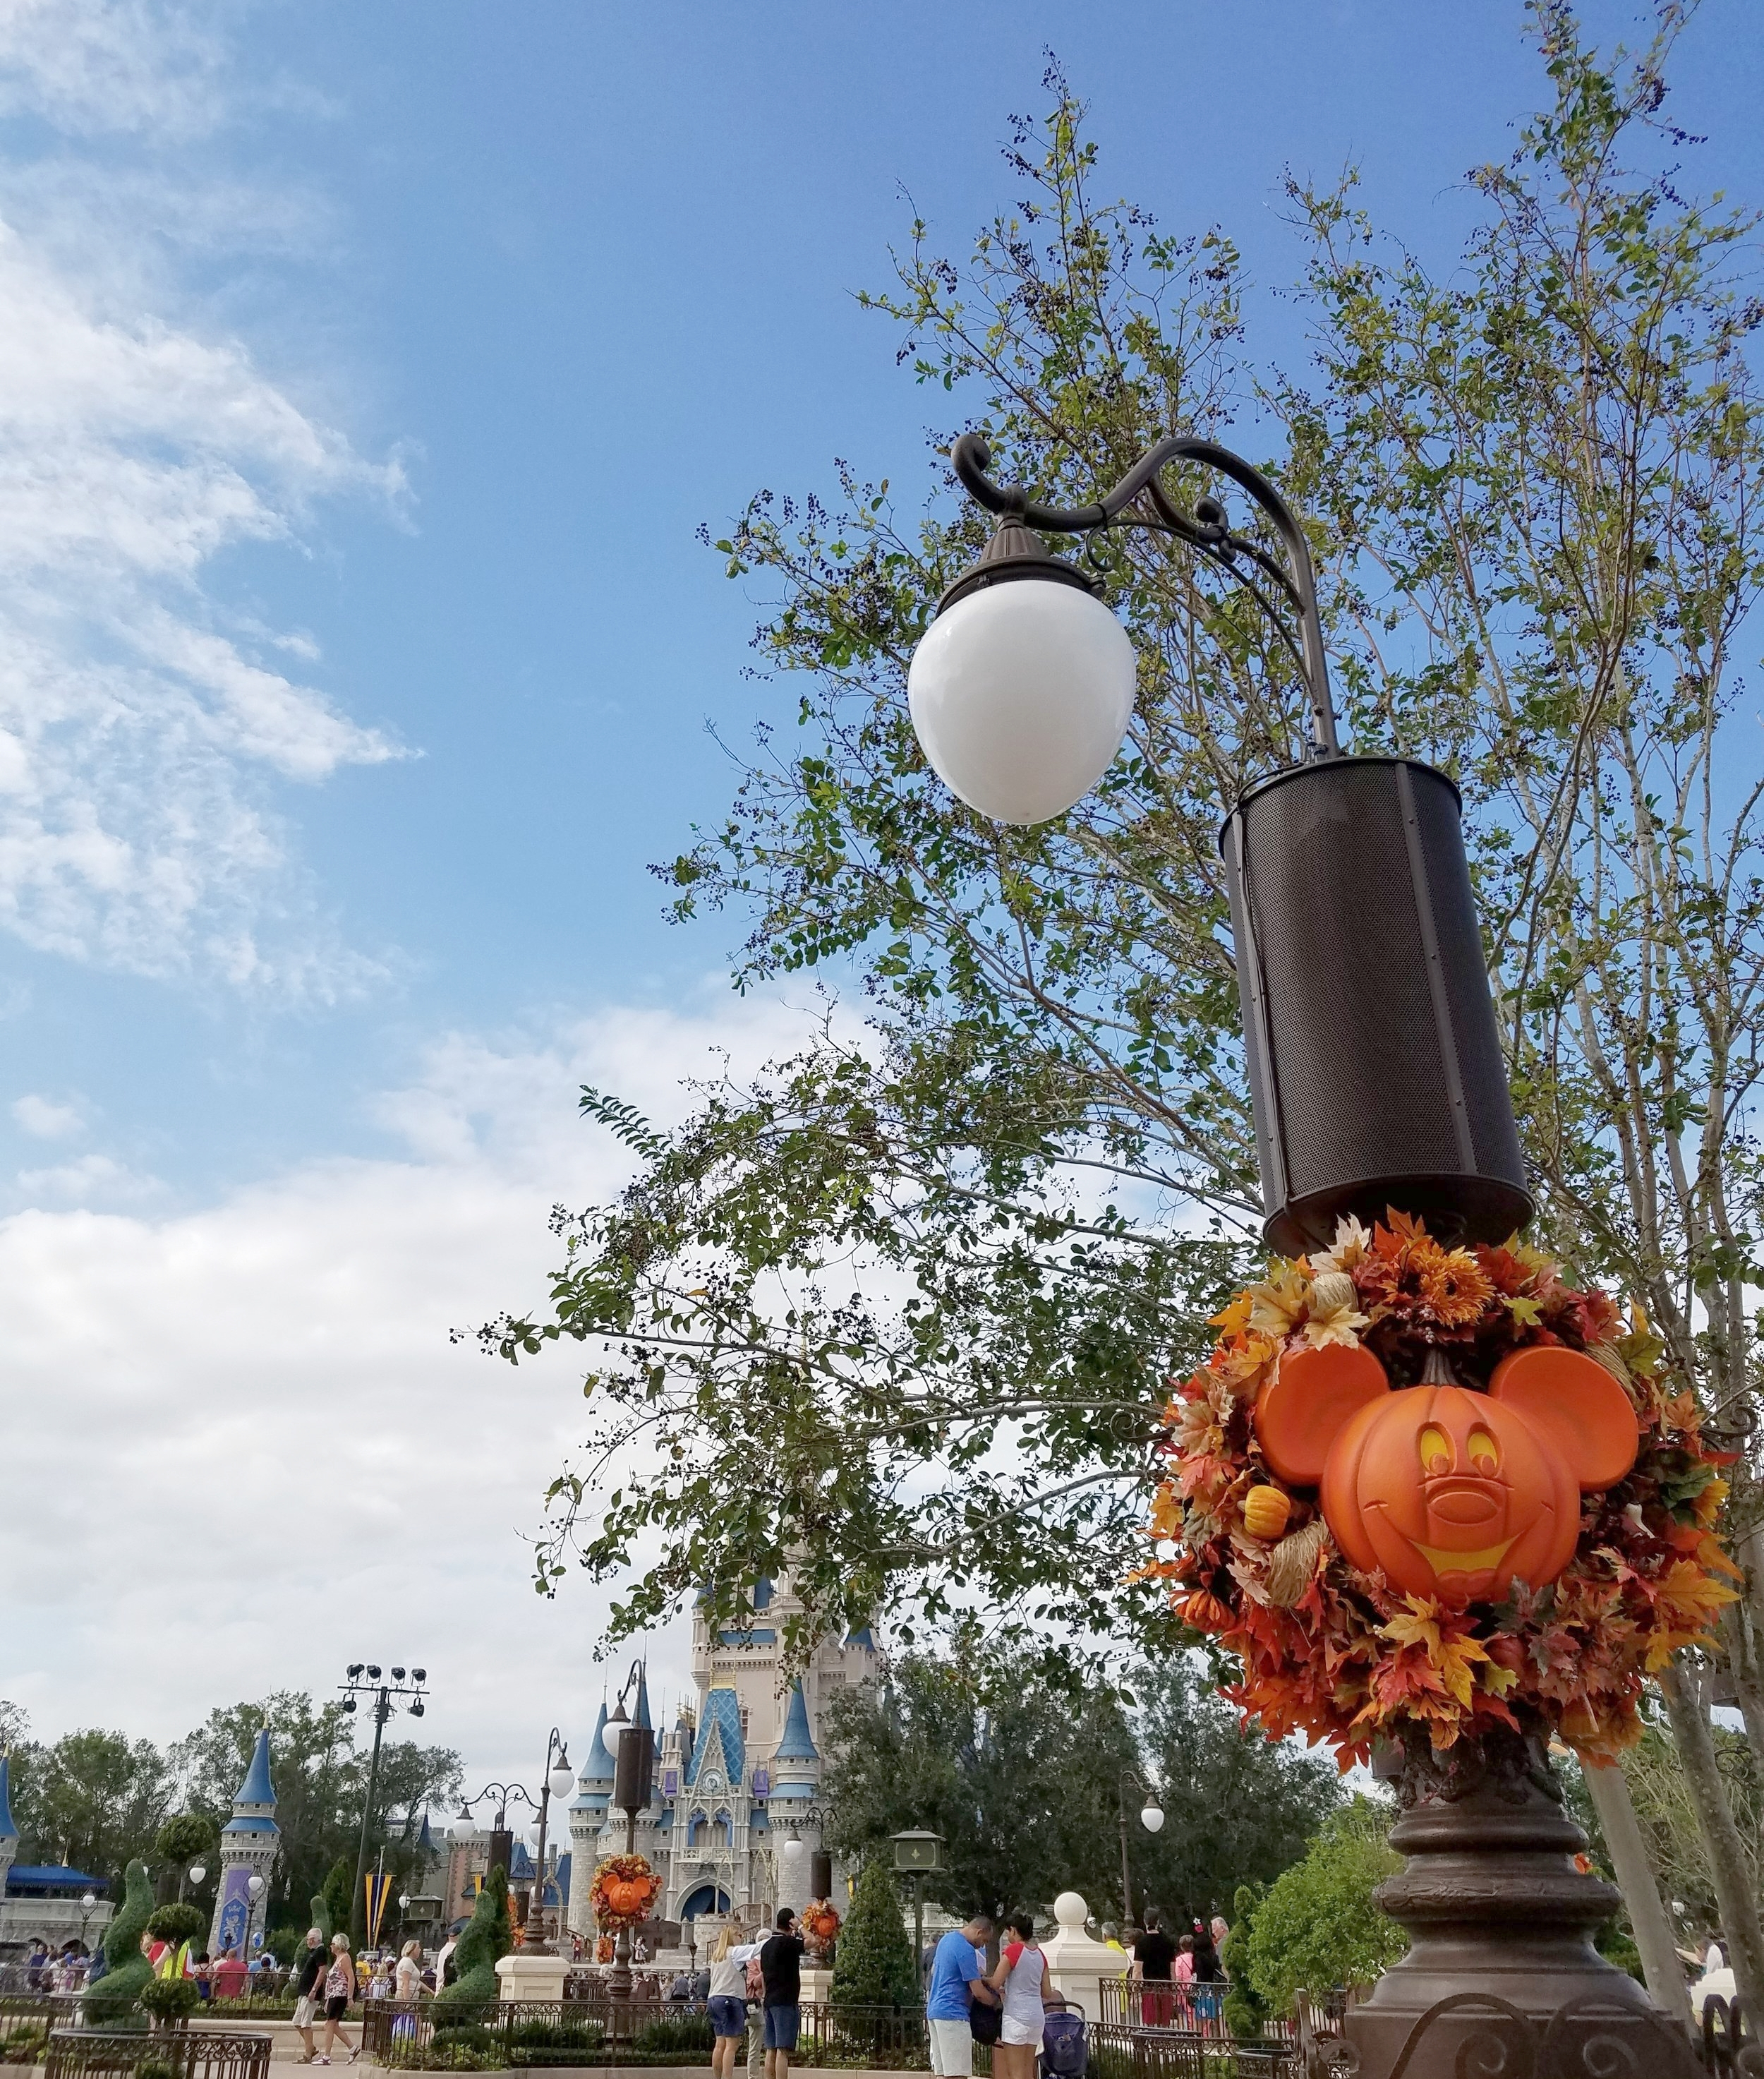 Mickey's Not-So-Scary Halloween Party at Disney's Magic Kingdom is full of candy, parades, and costumed characters. These tips will help you make the most of your time at the annual Halloween event at Disney World.  #disney #halloween #disneyworld #disneyfan #disneymagic #disneyevent